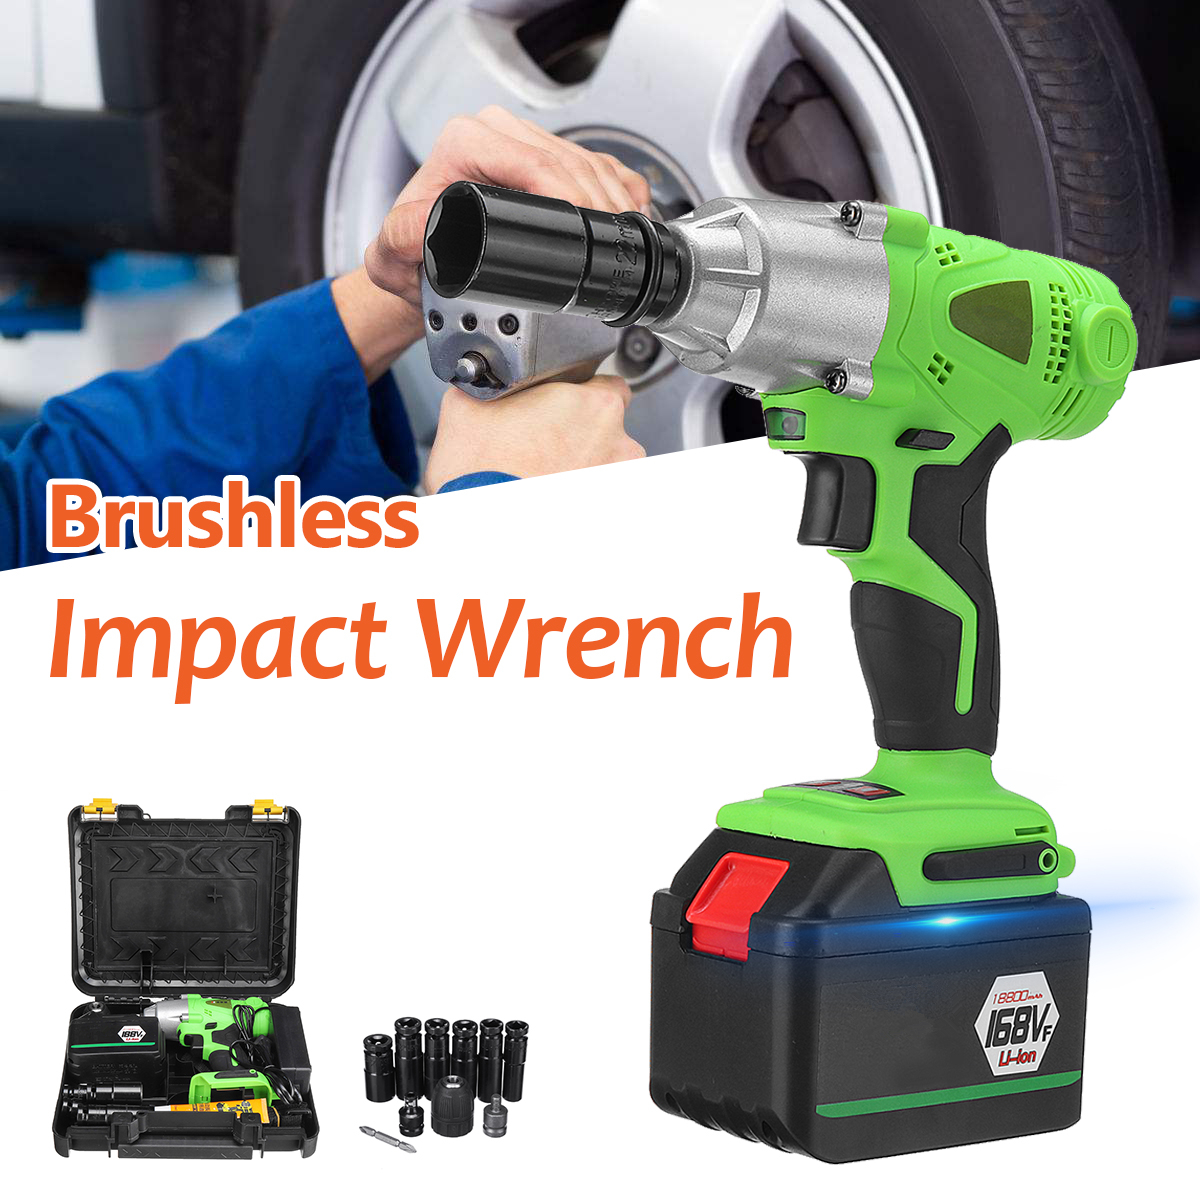 Hot Sale 98 128 168 188v Brushless Cordless Electric Impact Wrench